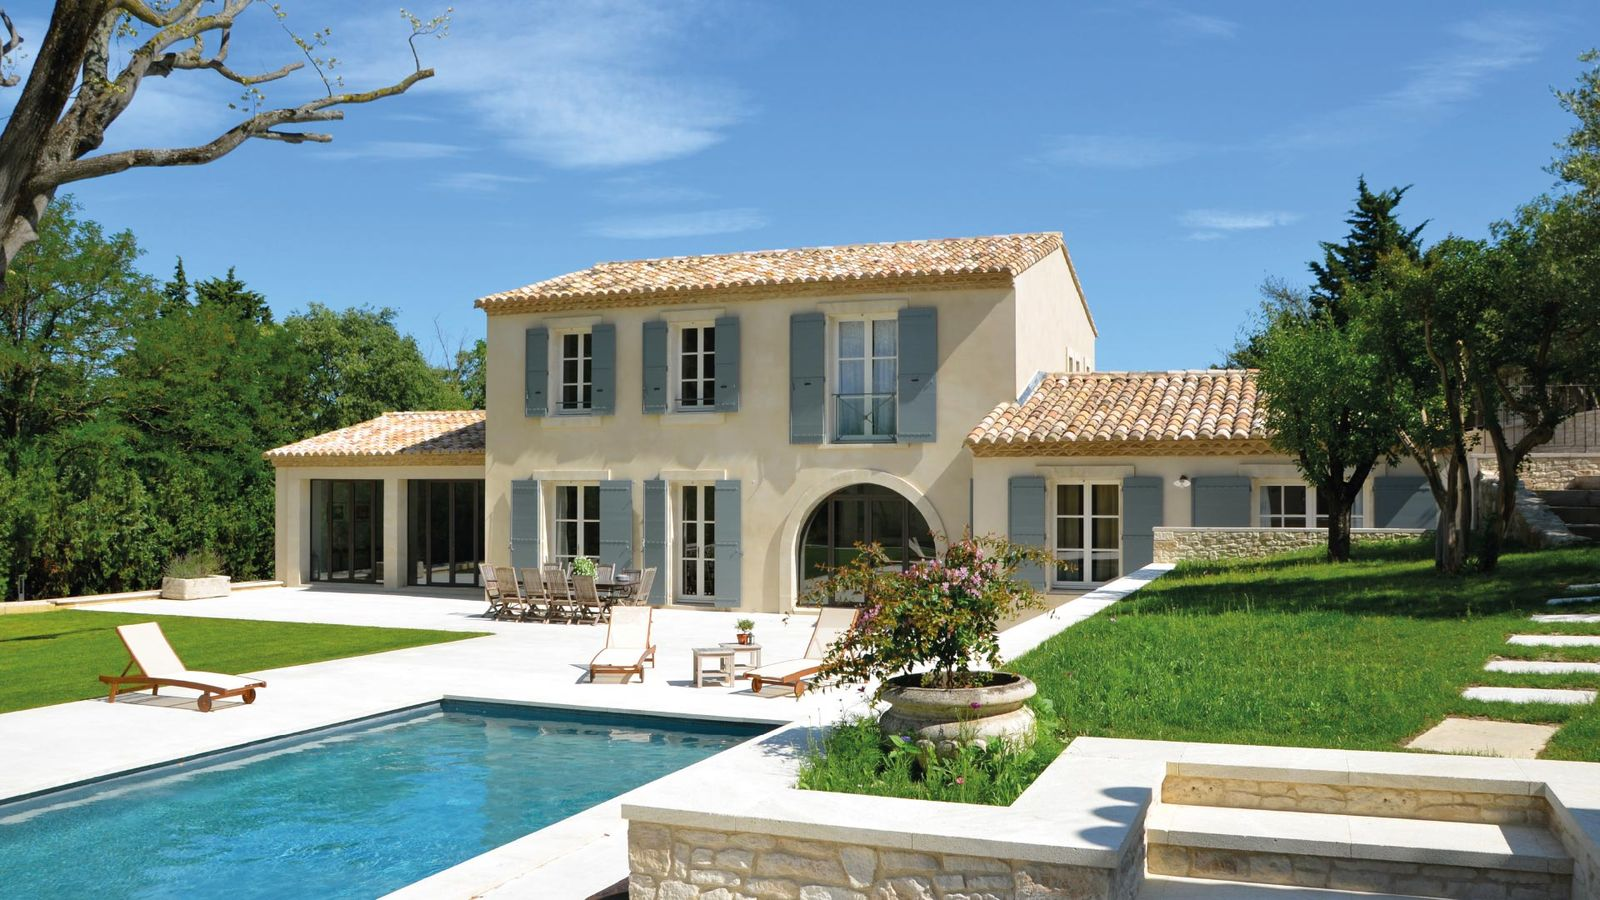 Location villa contemporaine face aux alpilles - Location en provence avec piscine ...